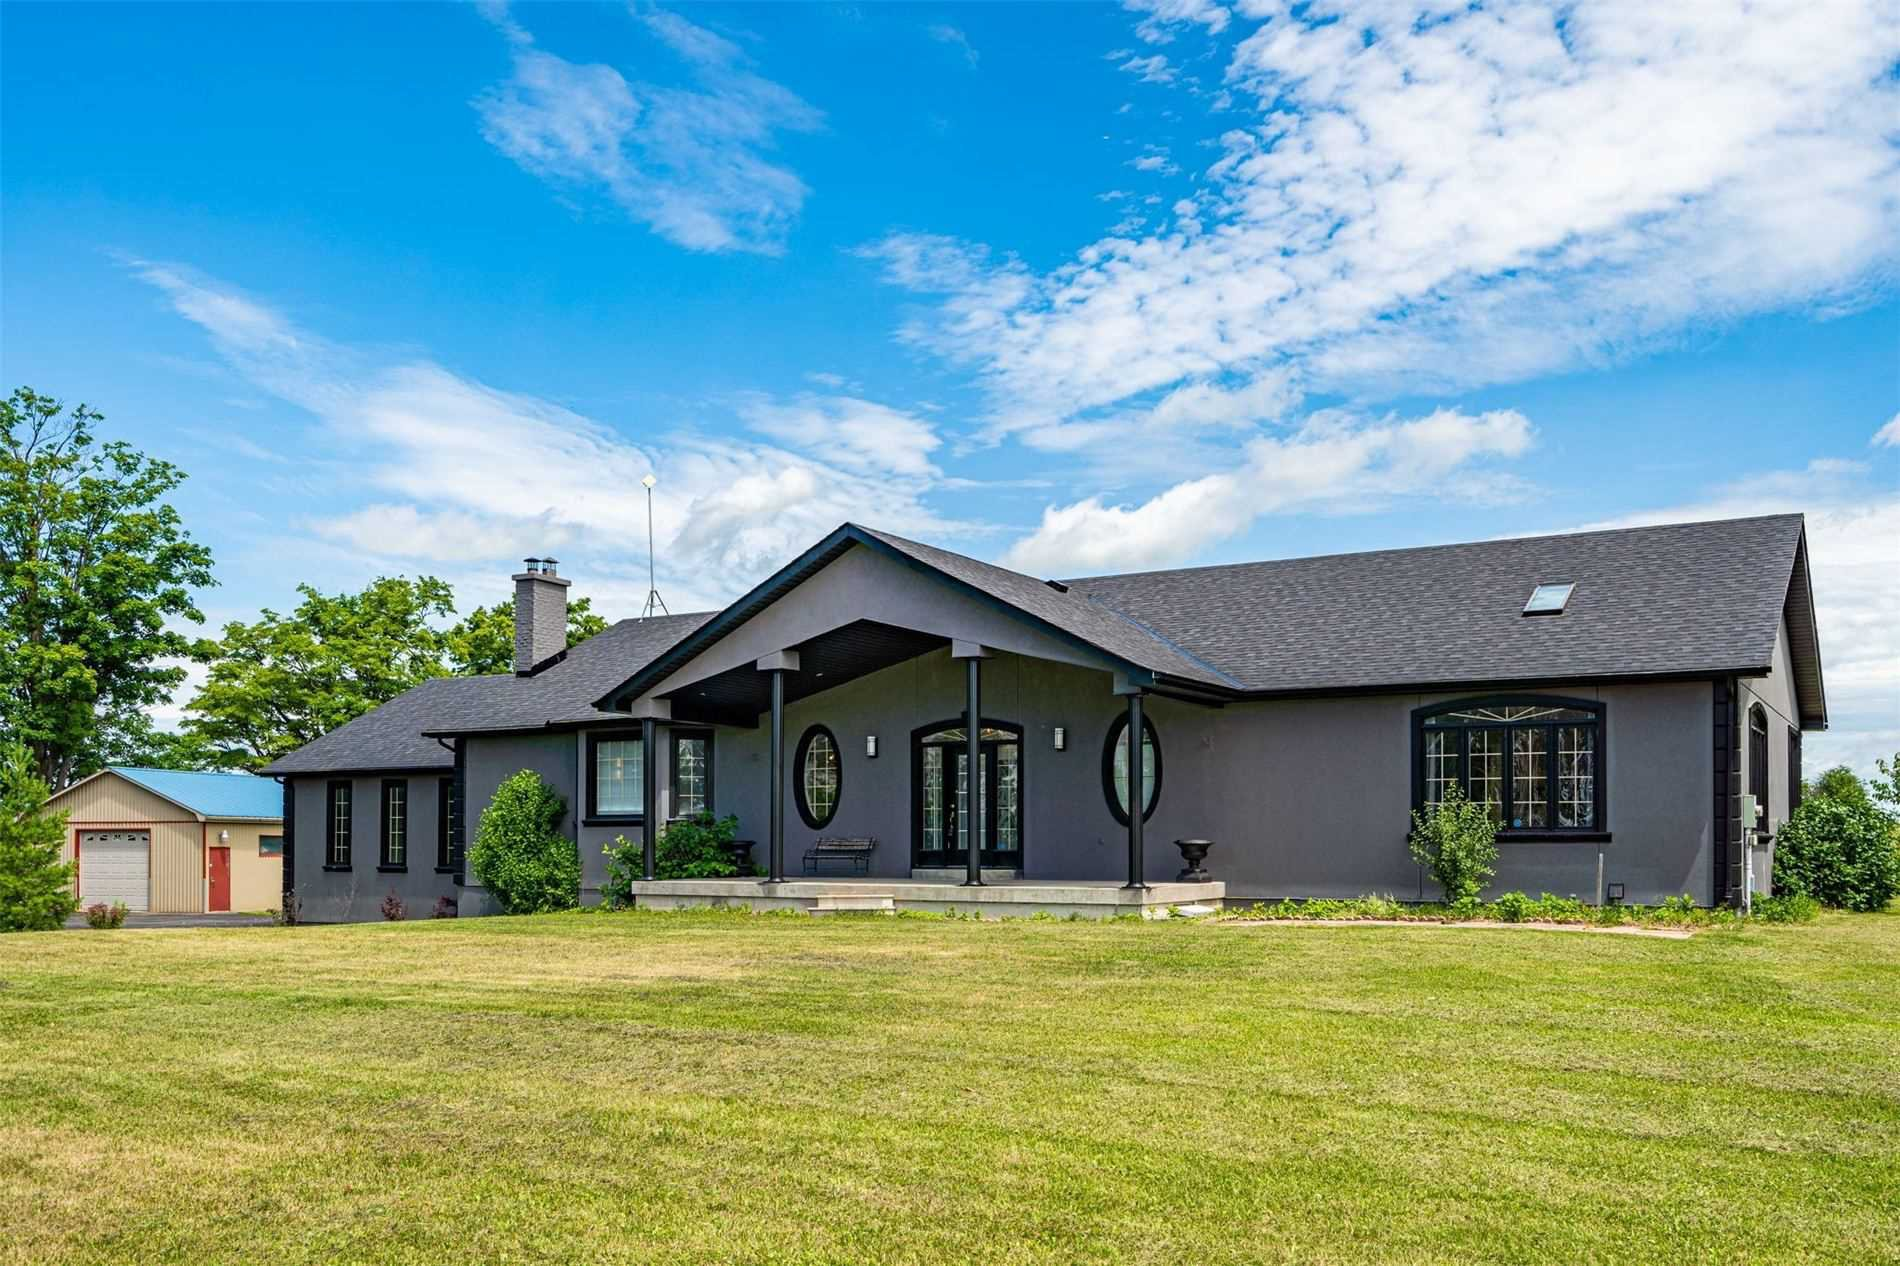 Main Photo: 232319 Trafalgar Road in East Garafraxa: Rural East Garafraxa House (Bungalow) for sale : MLS®# X4840979